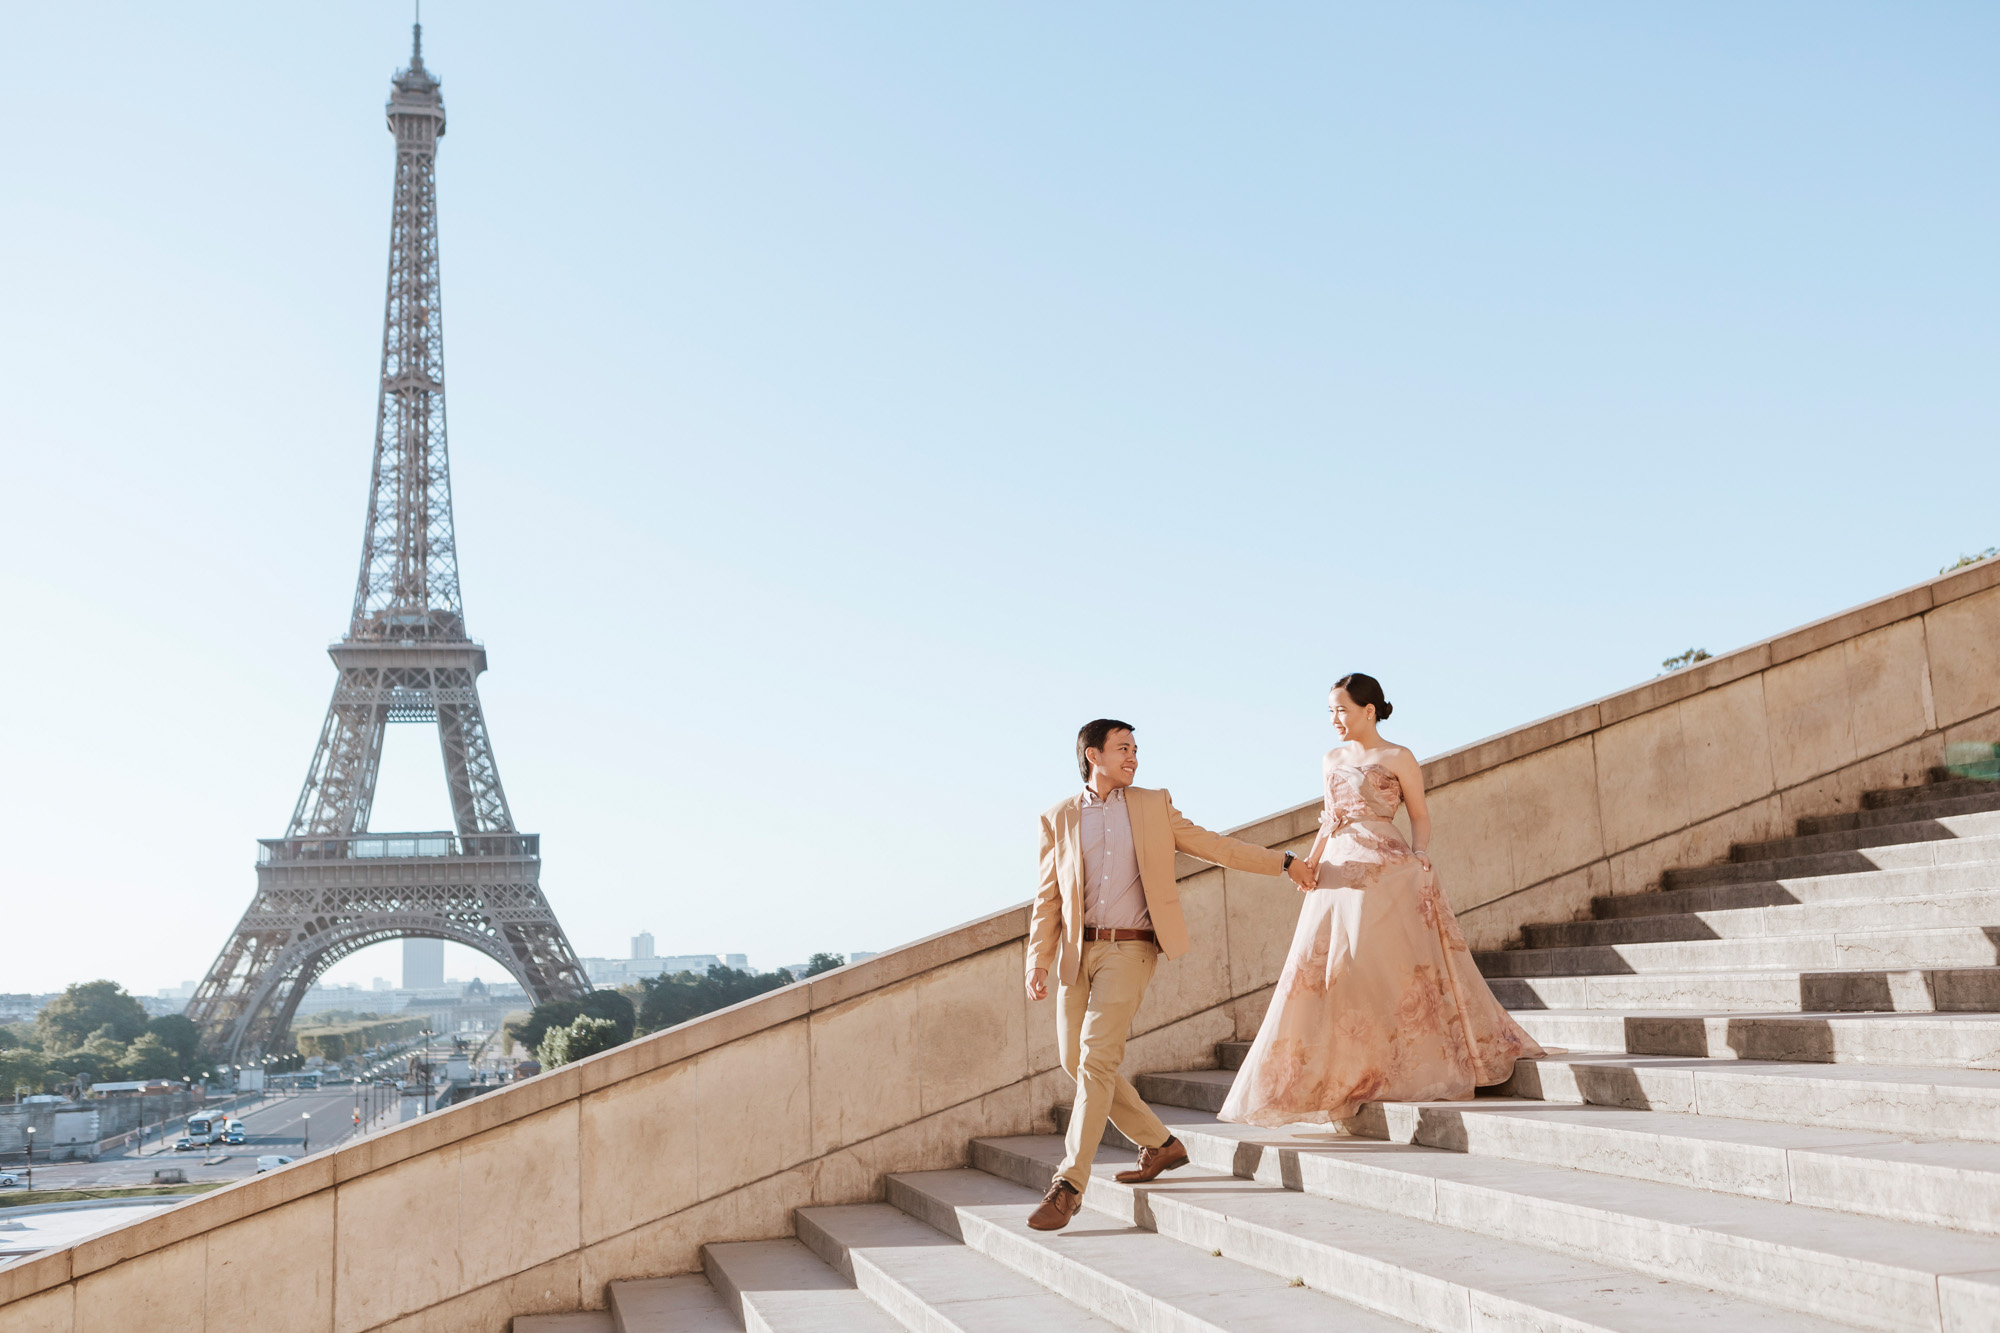 Pre-wedding couple portrait session walking the steps of Trocadero by the Eiffel Tower in sunrise captured by Photographer in Paris Federico Guendel